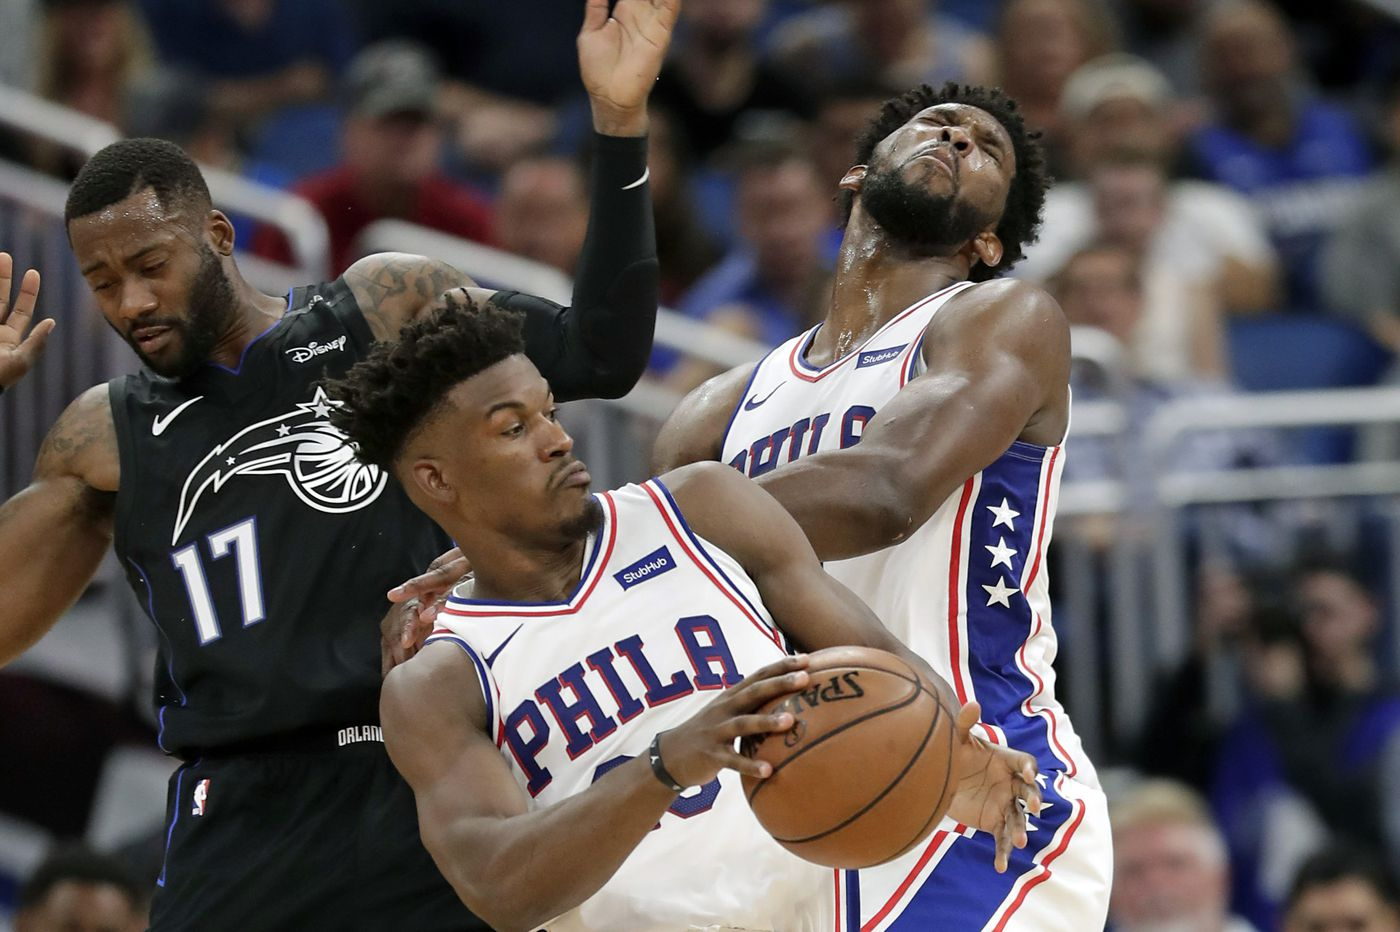 The Sixers have talent, but chemistry issues, internal strife, injury woes and horrid defense saddle them as schedule gets tougher | Keith Pompey